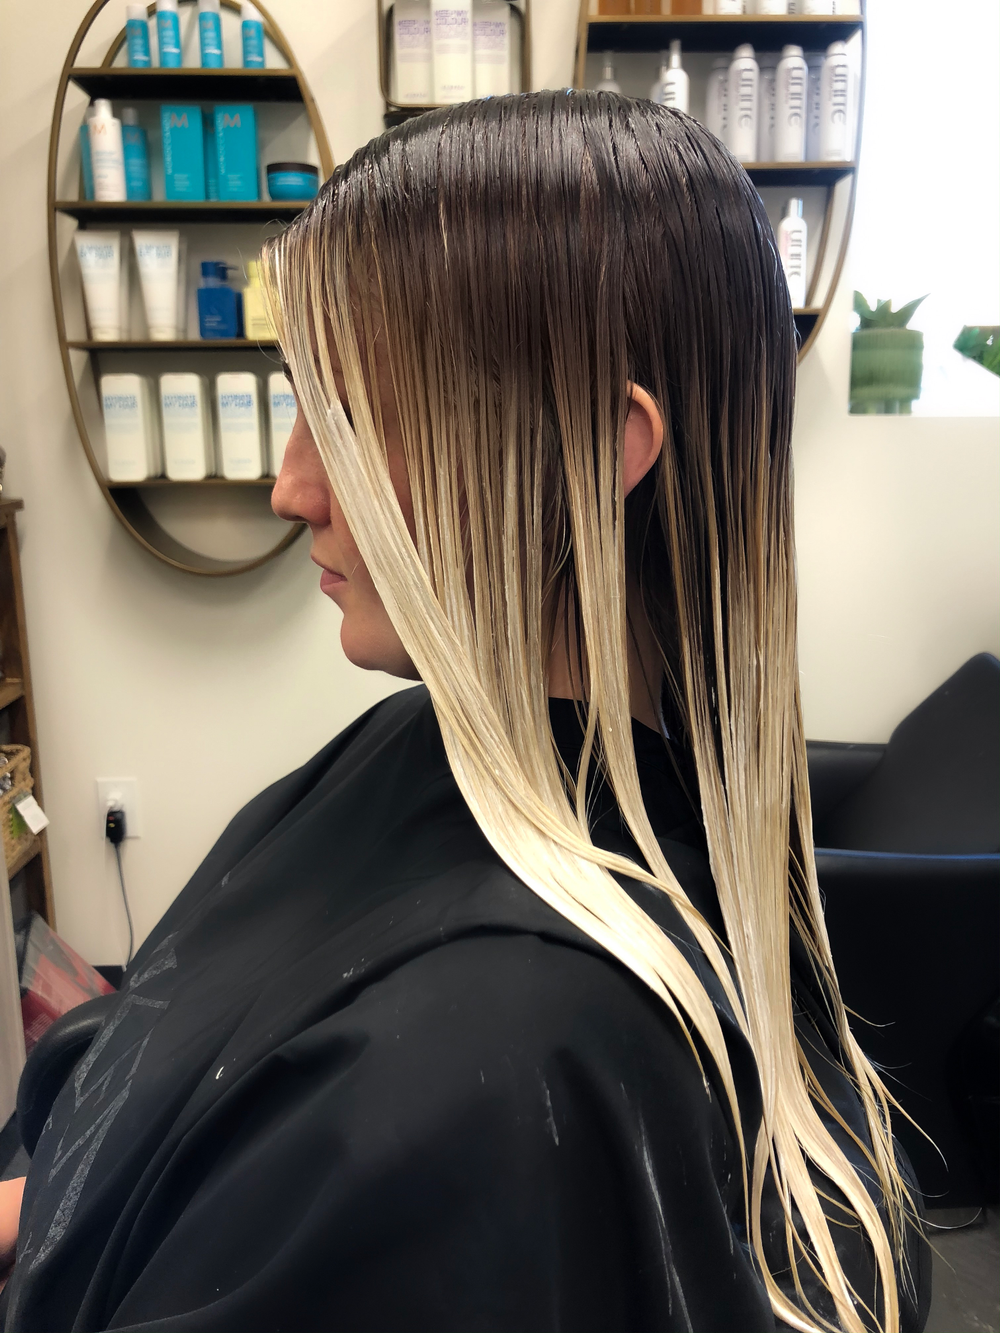 """When I use this as an after-lightening service for that extra boost, I process the hair for 15 minutes maximum to provide my client with seamless transitioned ends,"" she says. ""This gentle approach will be all they need for a little extra bump."""